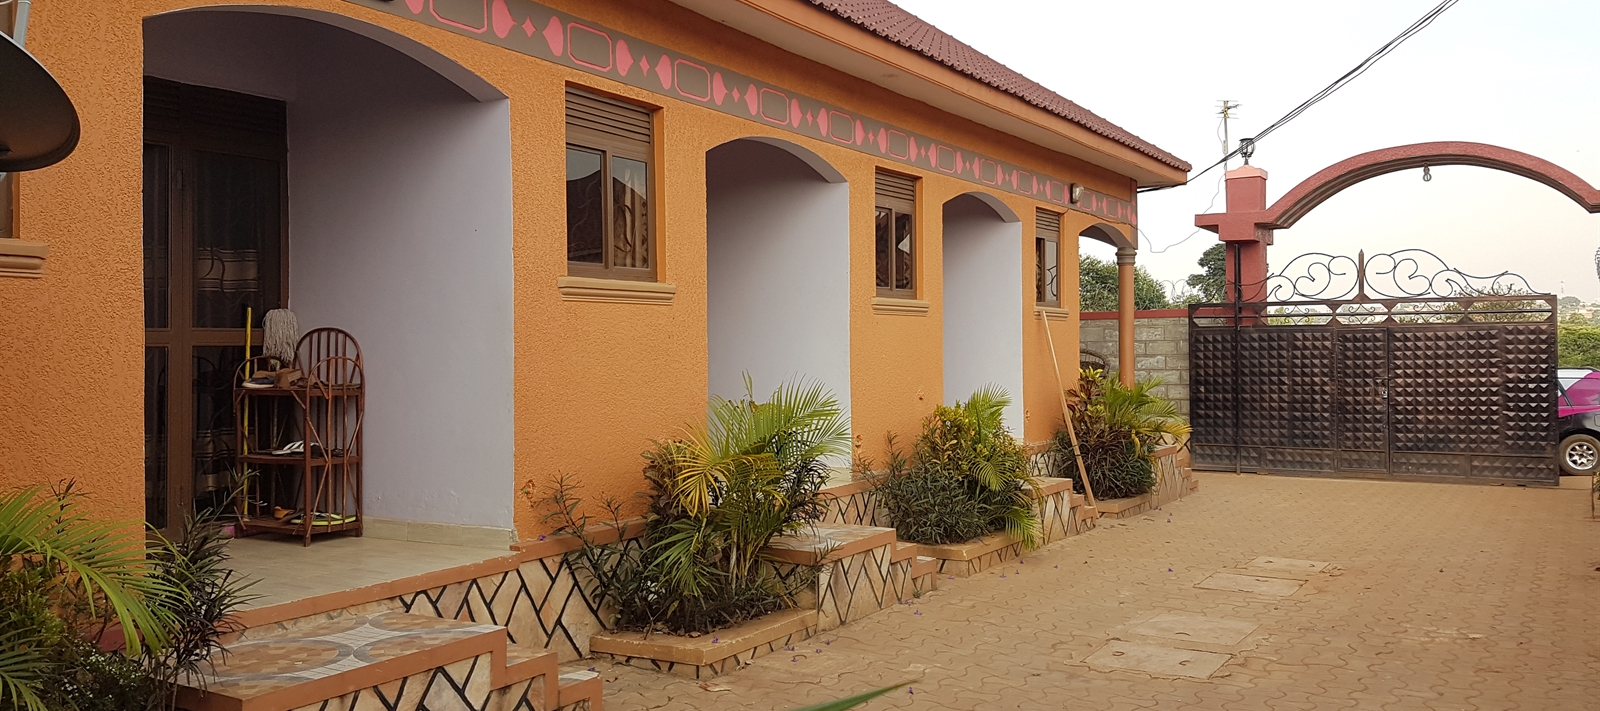 Rental units to let in Kungu.